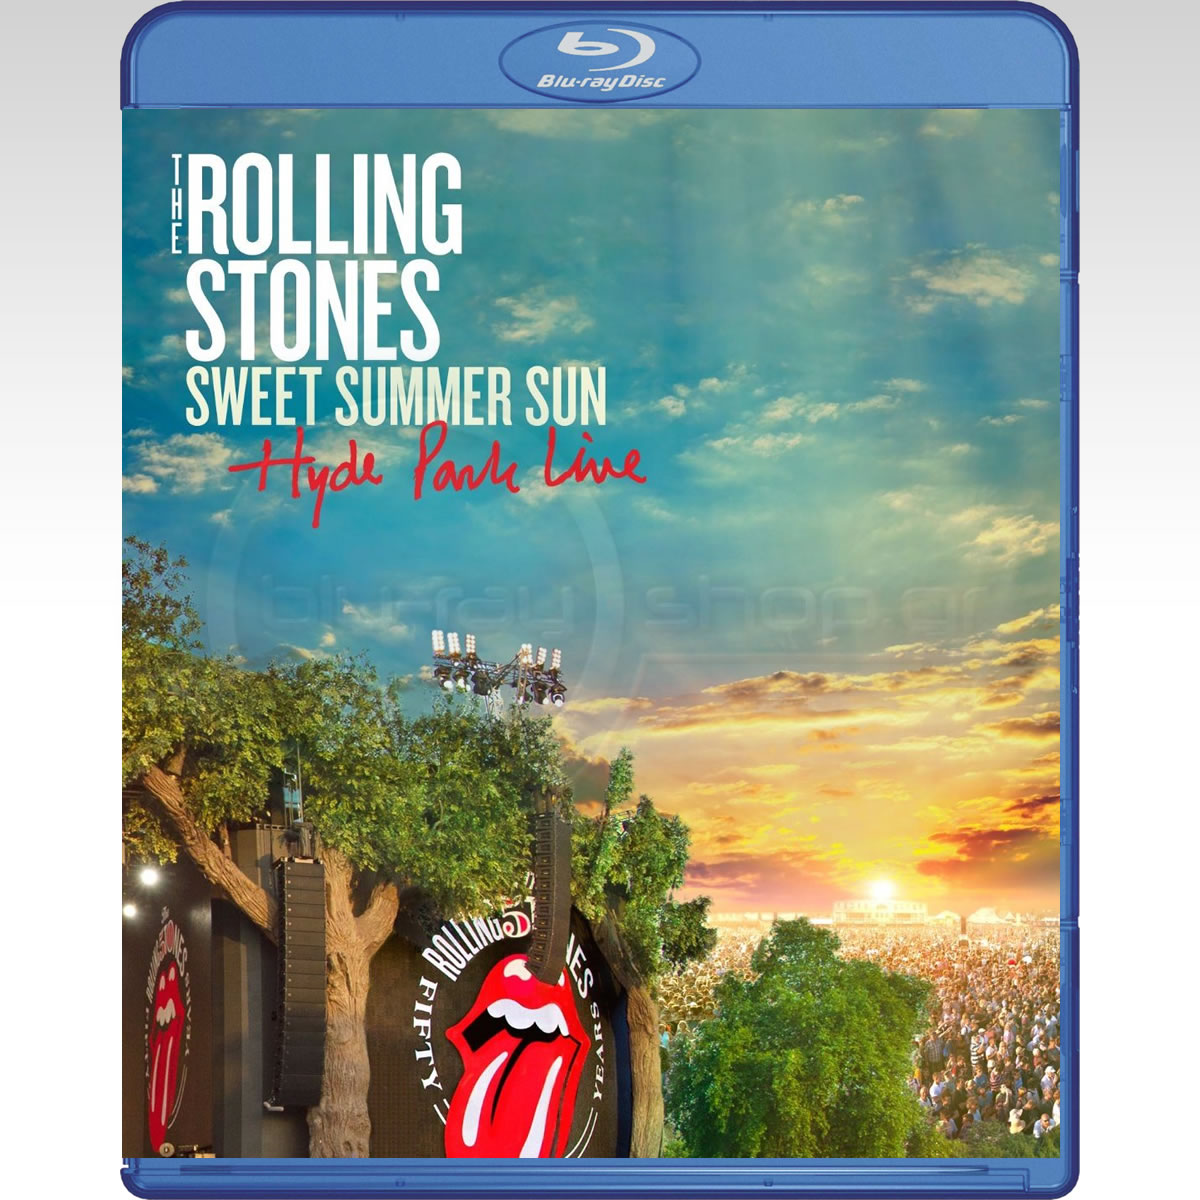 THE ROLLING STONES: SWEET SUMMER SUN - HYDE PARK LIVE (BLU-RAY)